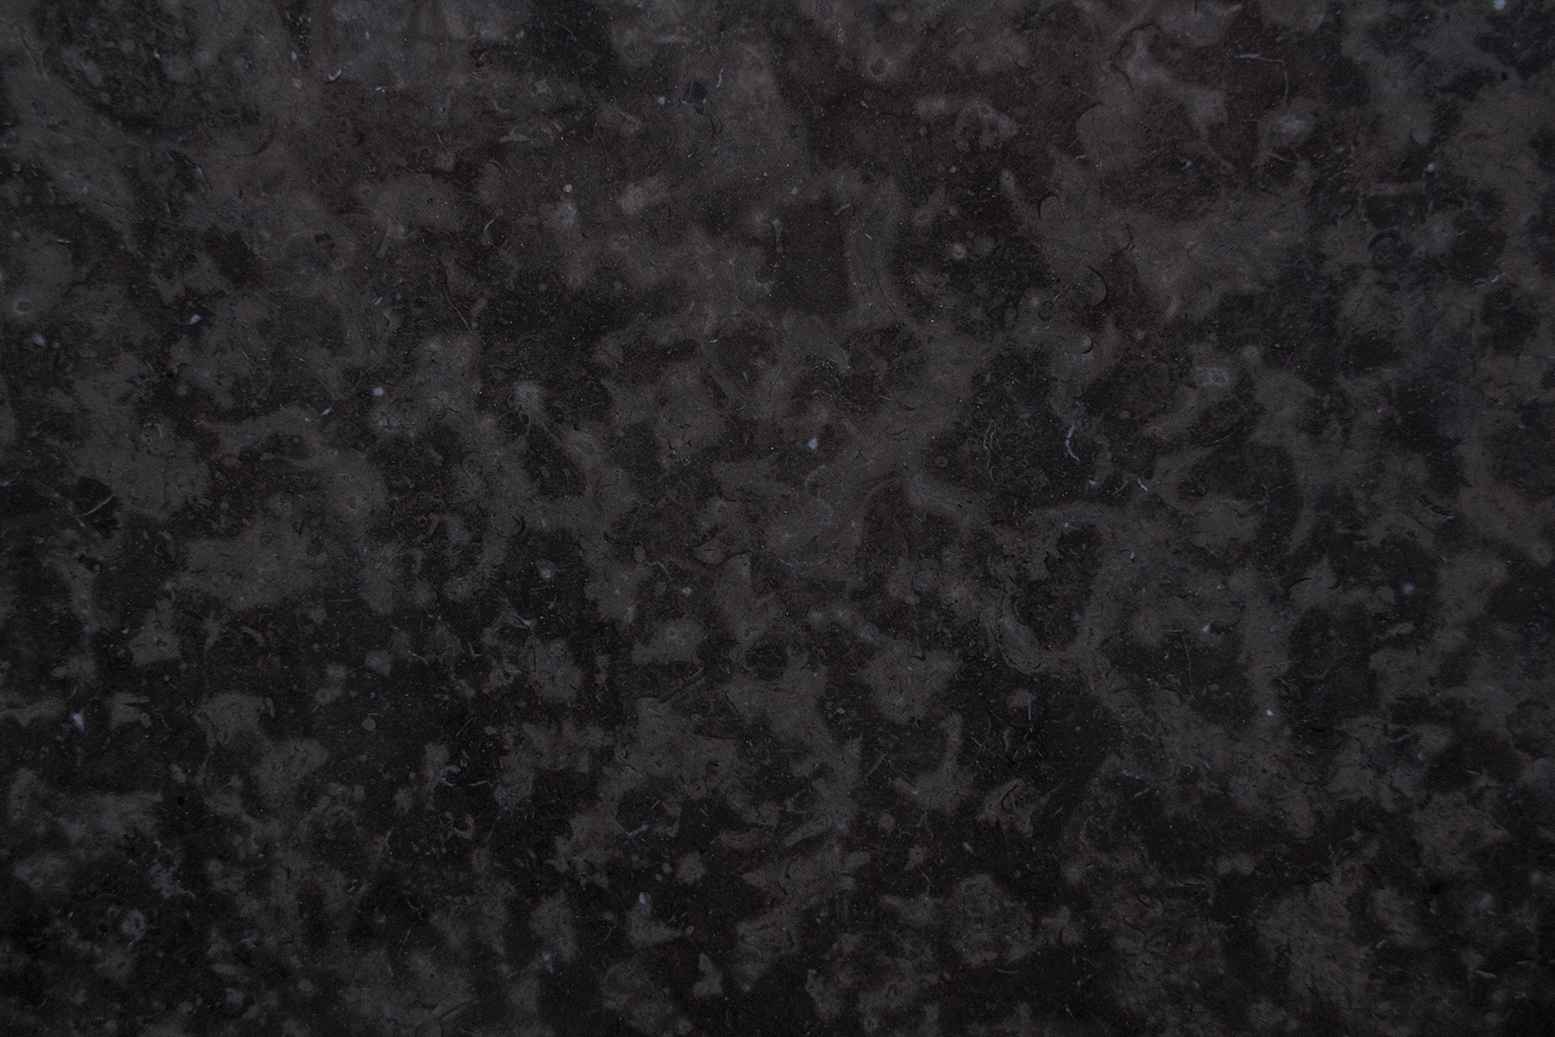 Мрамор Мели Грей Дарк (Meli Grey Dark Marble) polished